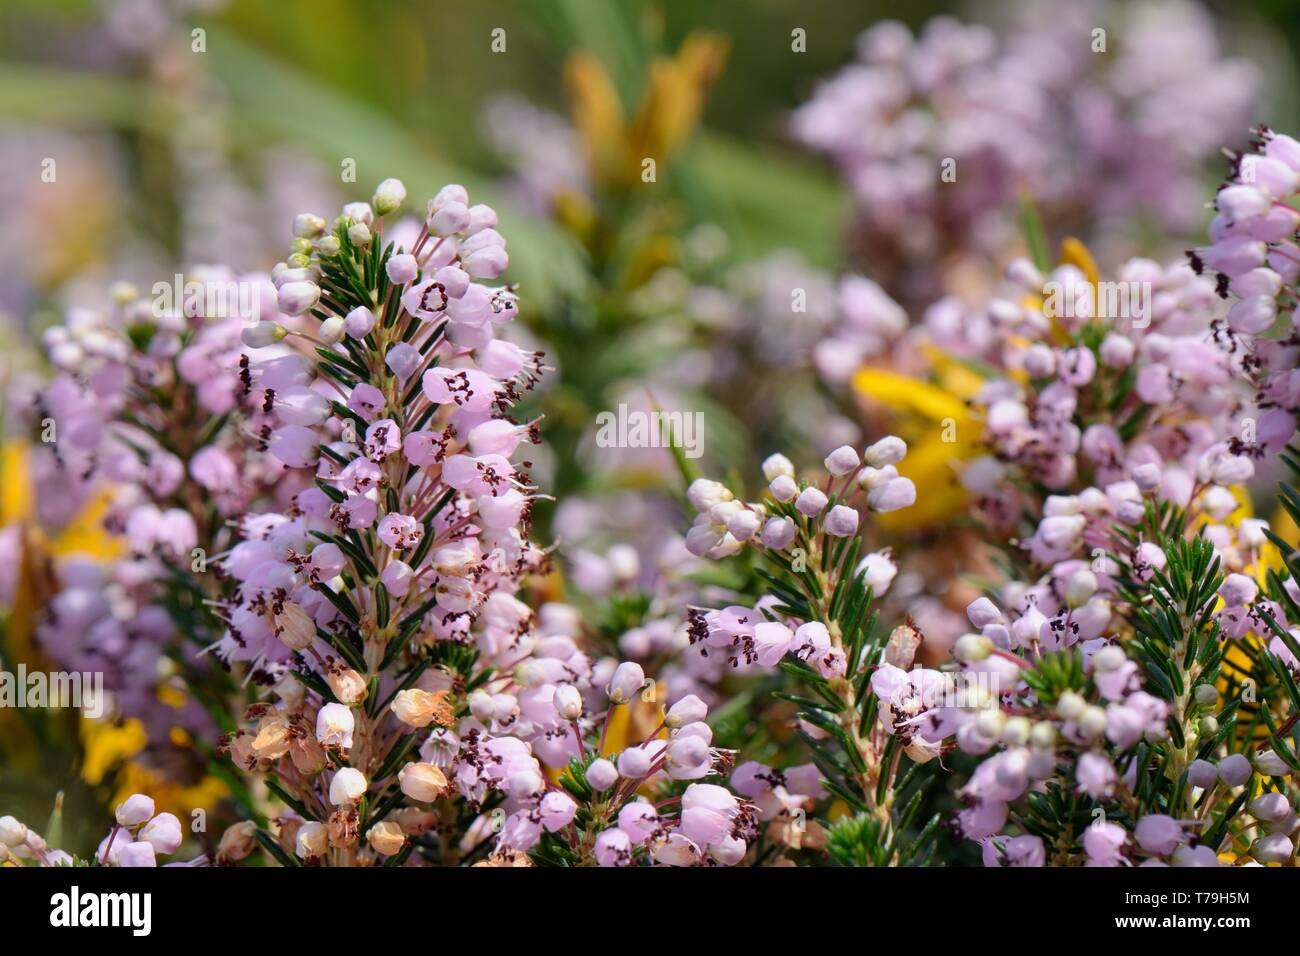 Cornish heath (Erica vagans) clump flowering on montane pastureland, above the Lakes of Covadonga, at 1300m, Picos de Europa, Asturias, Spain, August. - Stock Image